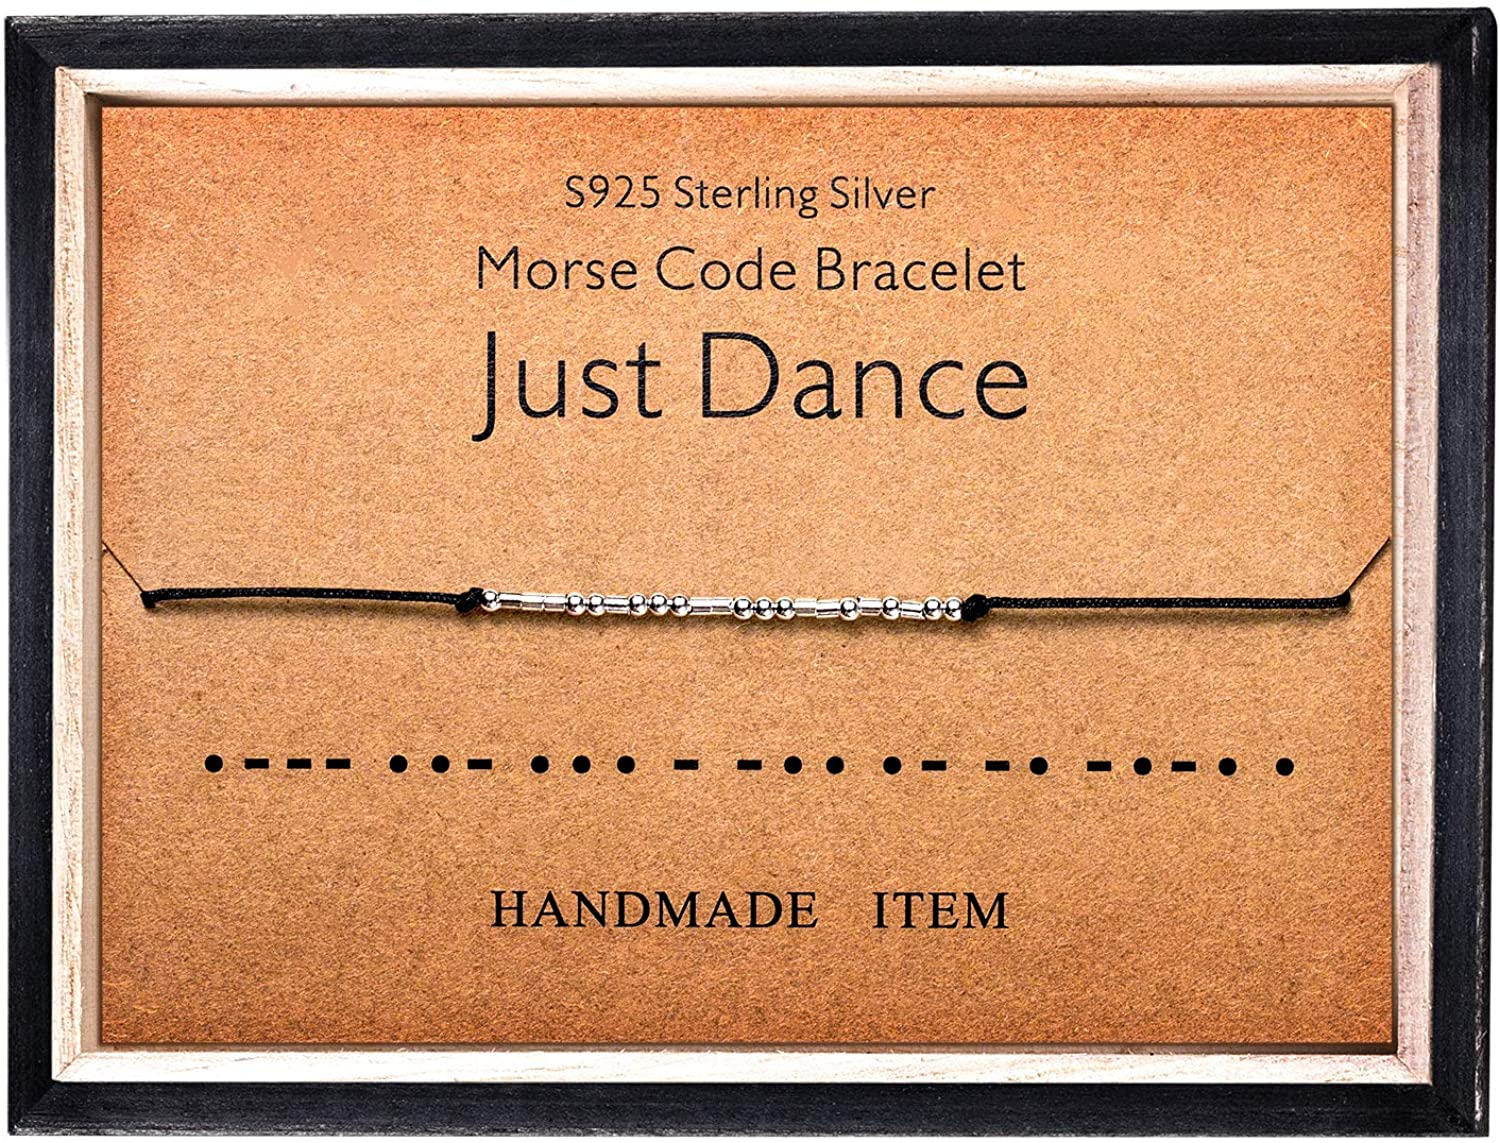 Morse Code Bracelet 925 Sterling Silver Beads on Silk Cord Secret Message Just Dance bracelet Gift Jewelry for her